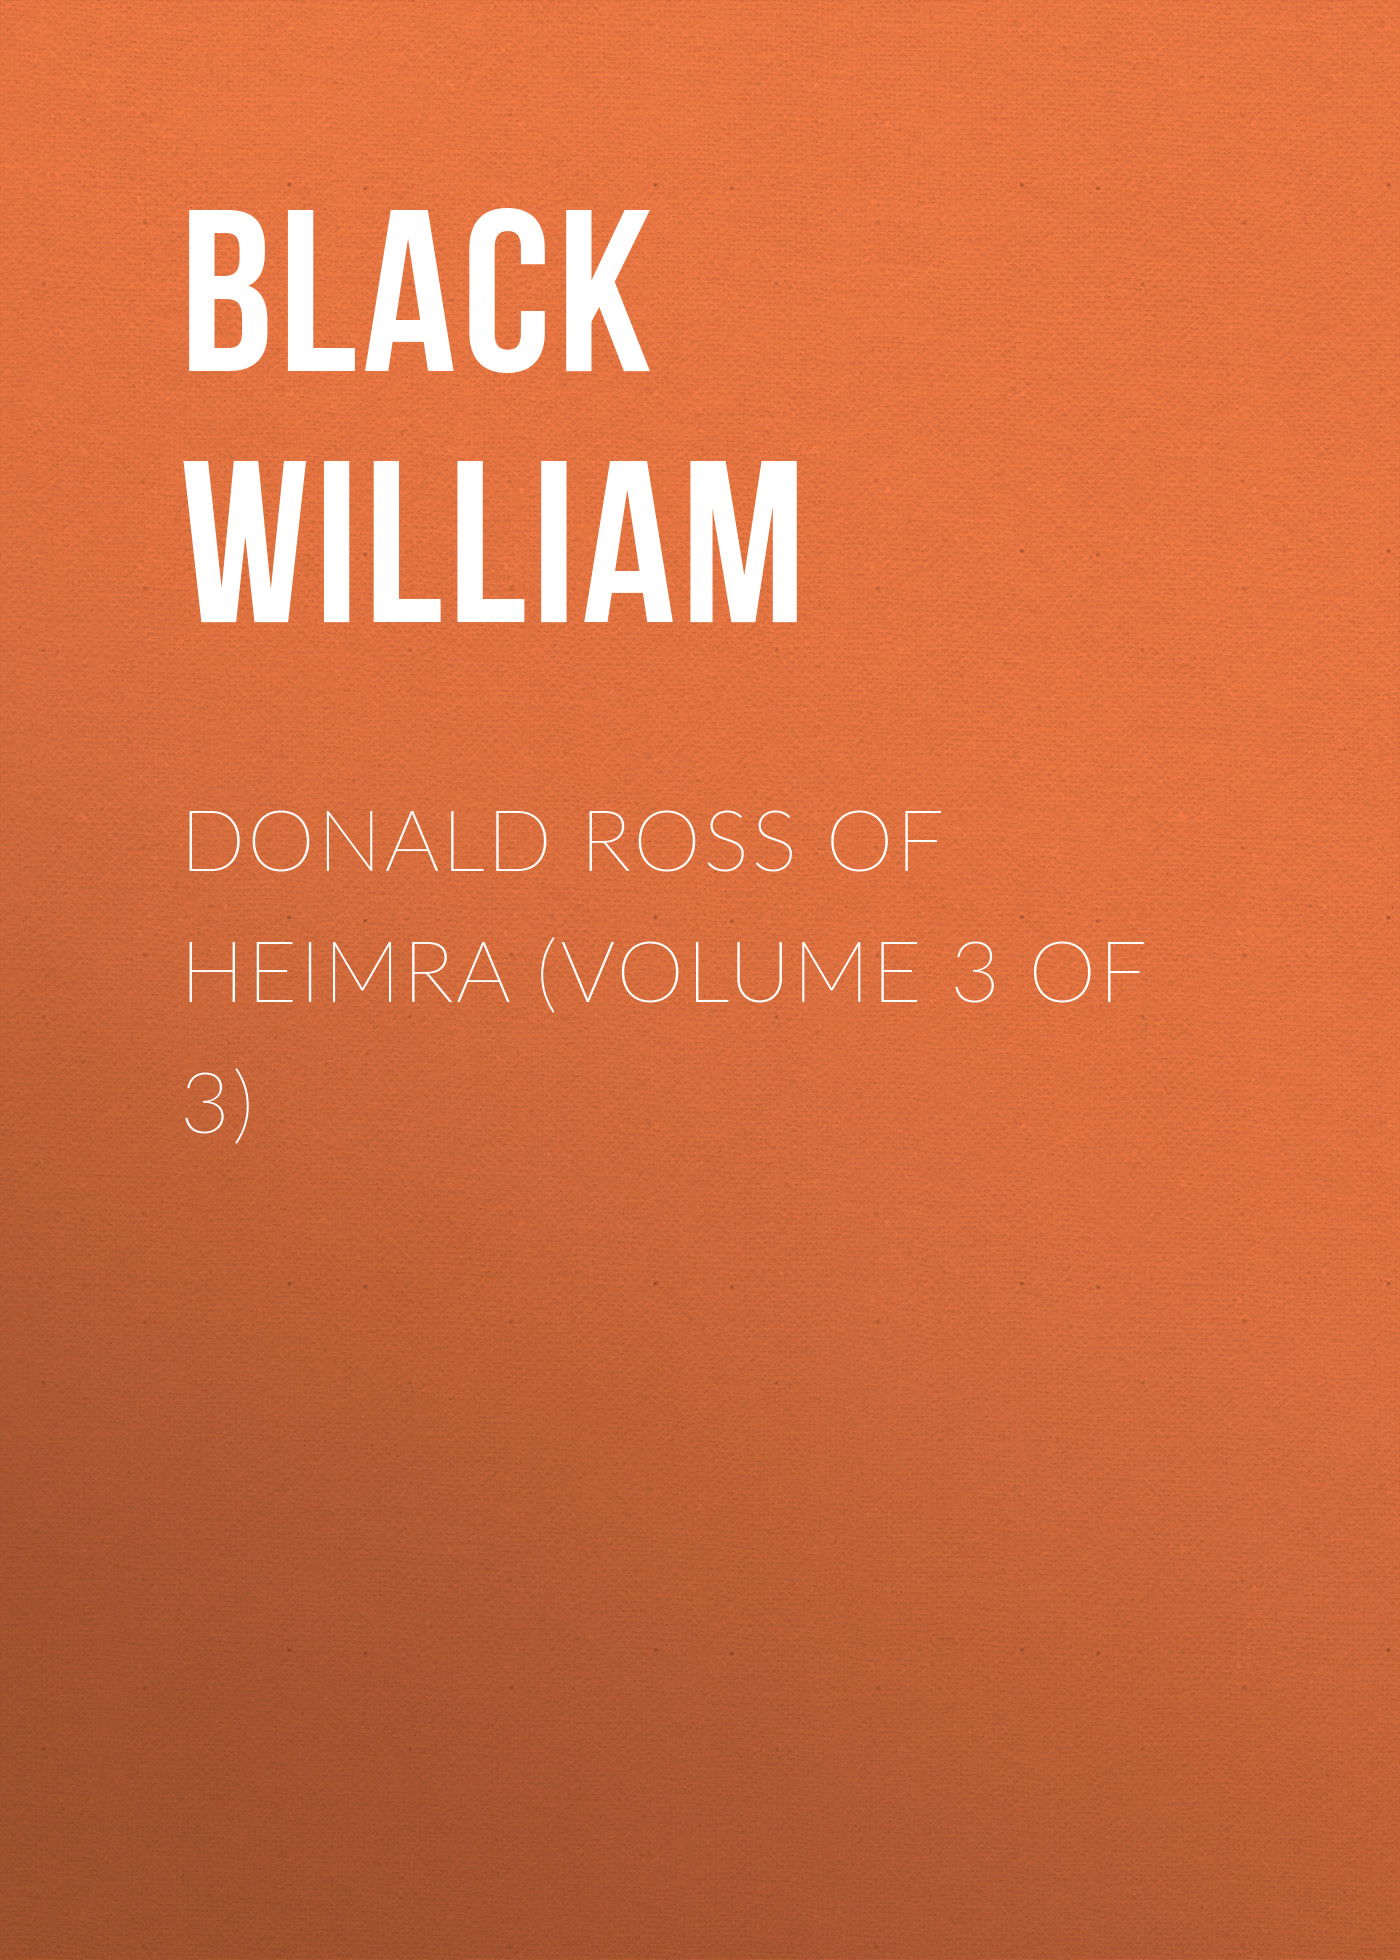 Black William Donald Ross of Heimra (Volume 3 of 3) produino digital 3 axis acceleration of gravity tilt module iic spi transmission for arduino